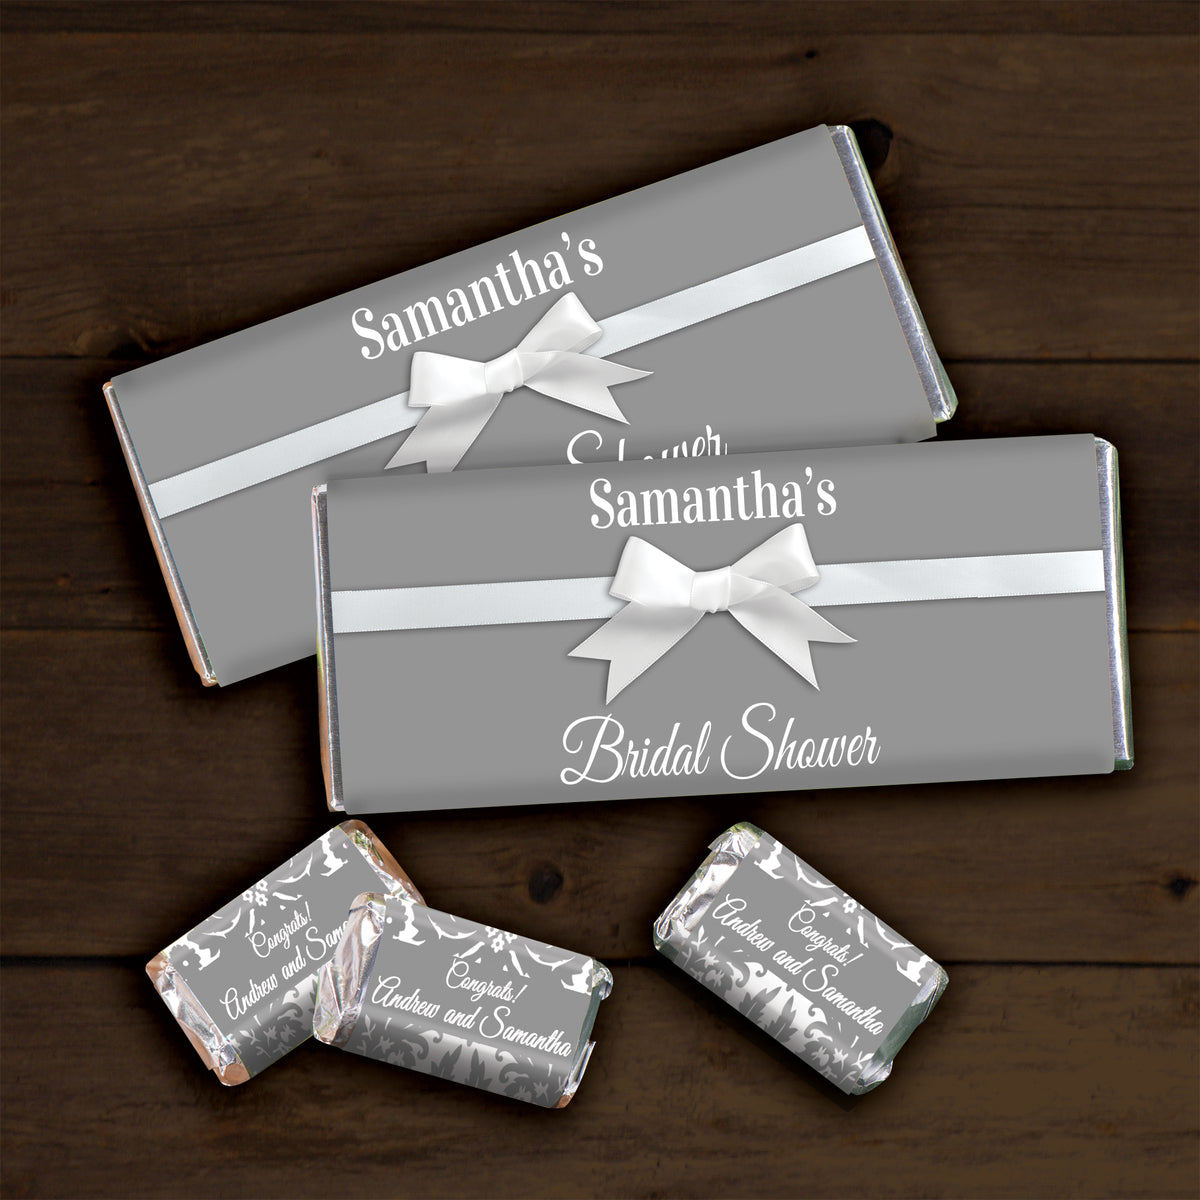 Hershey's Chocolate Frozen Wonderland Personalized Candy Bars